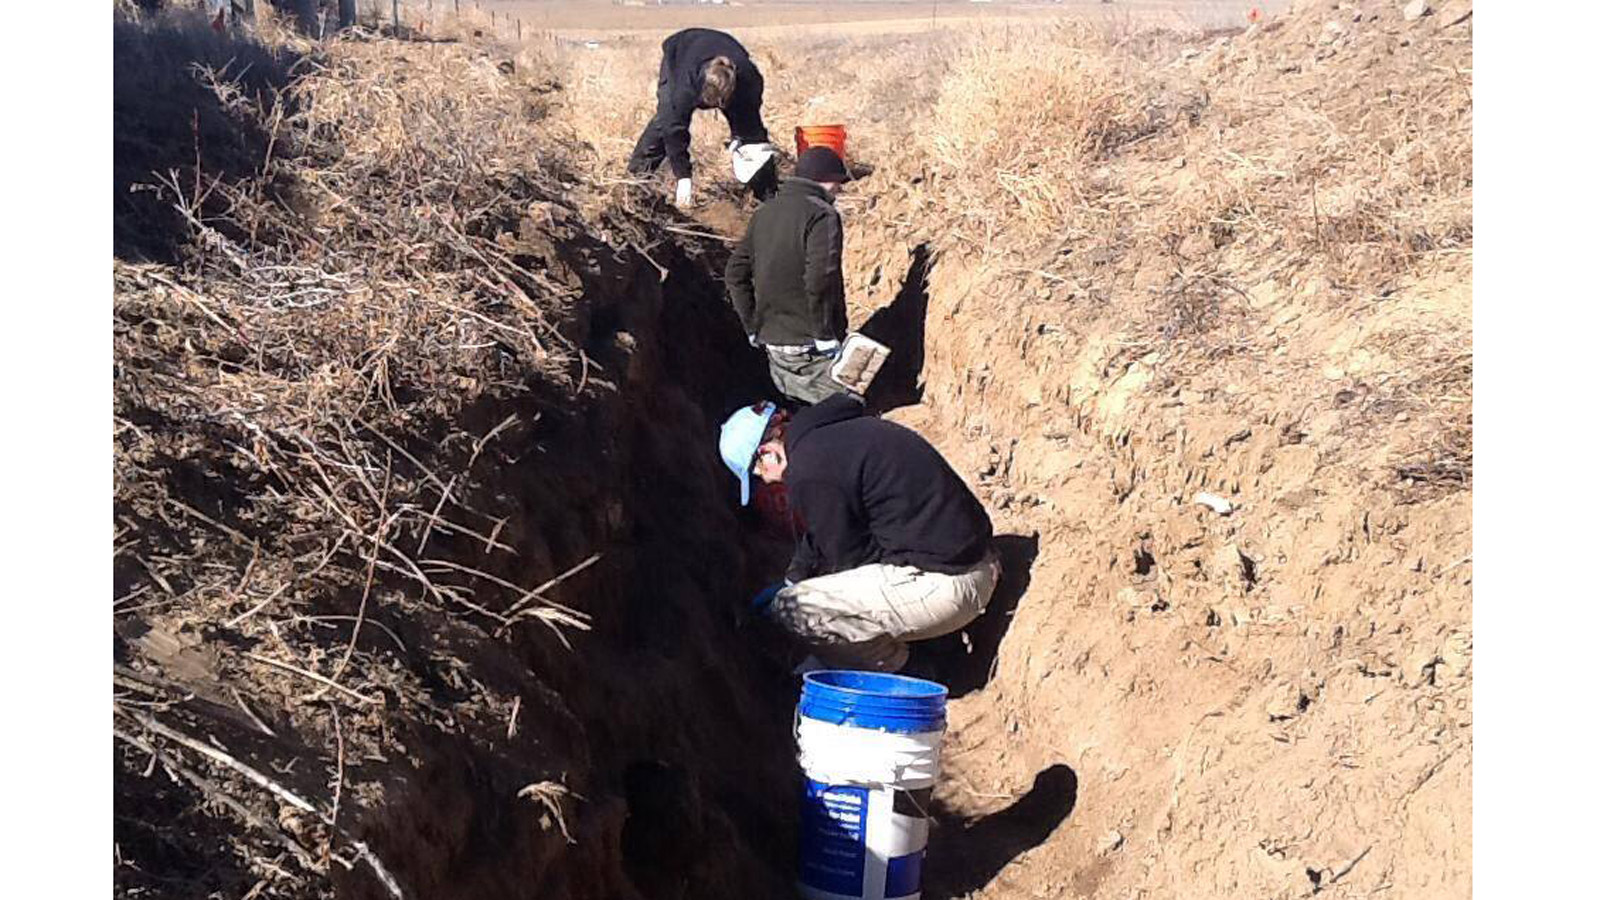 Investigators search for evidence after human remains were found near the Front Range Airport (credit: Adams County Sheriff's Office)